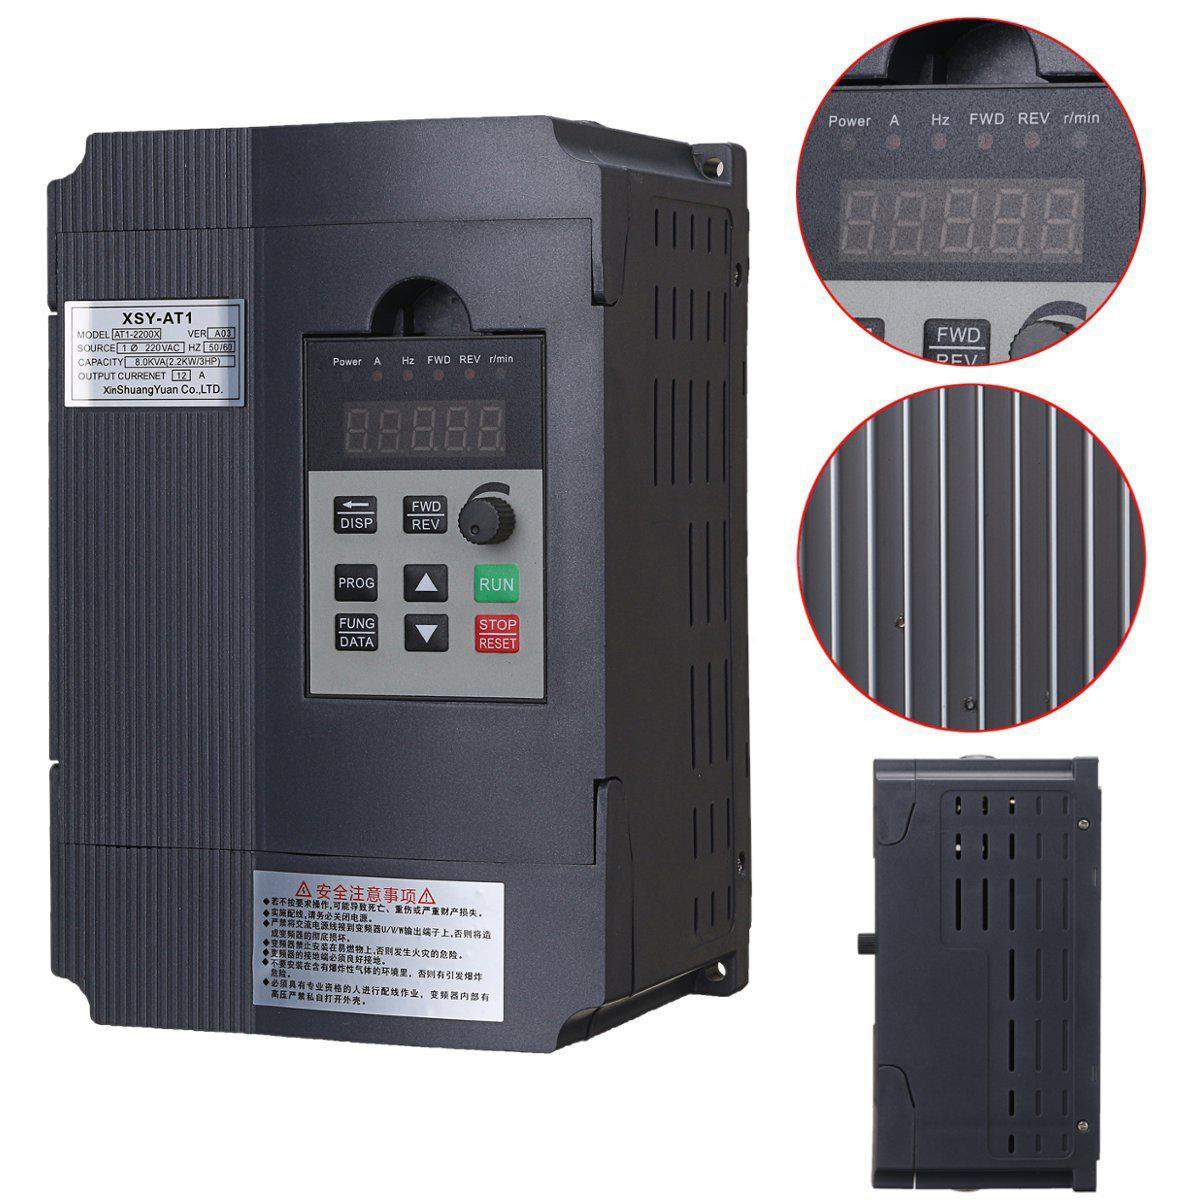 2.2KW 12A 3HP Single Phase Variable Frequency Inverter Mayitr Speed Control Drive Inverter VSD VFD PWM Control панель декоративная awenta pet100 д вентилятора kw сатин